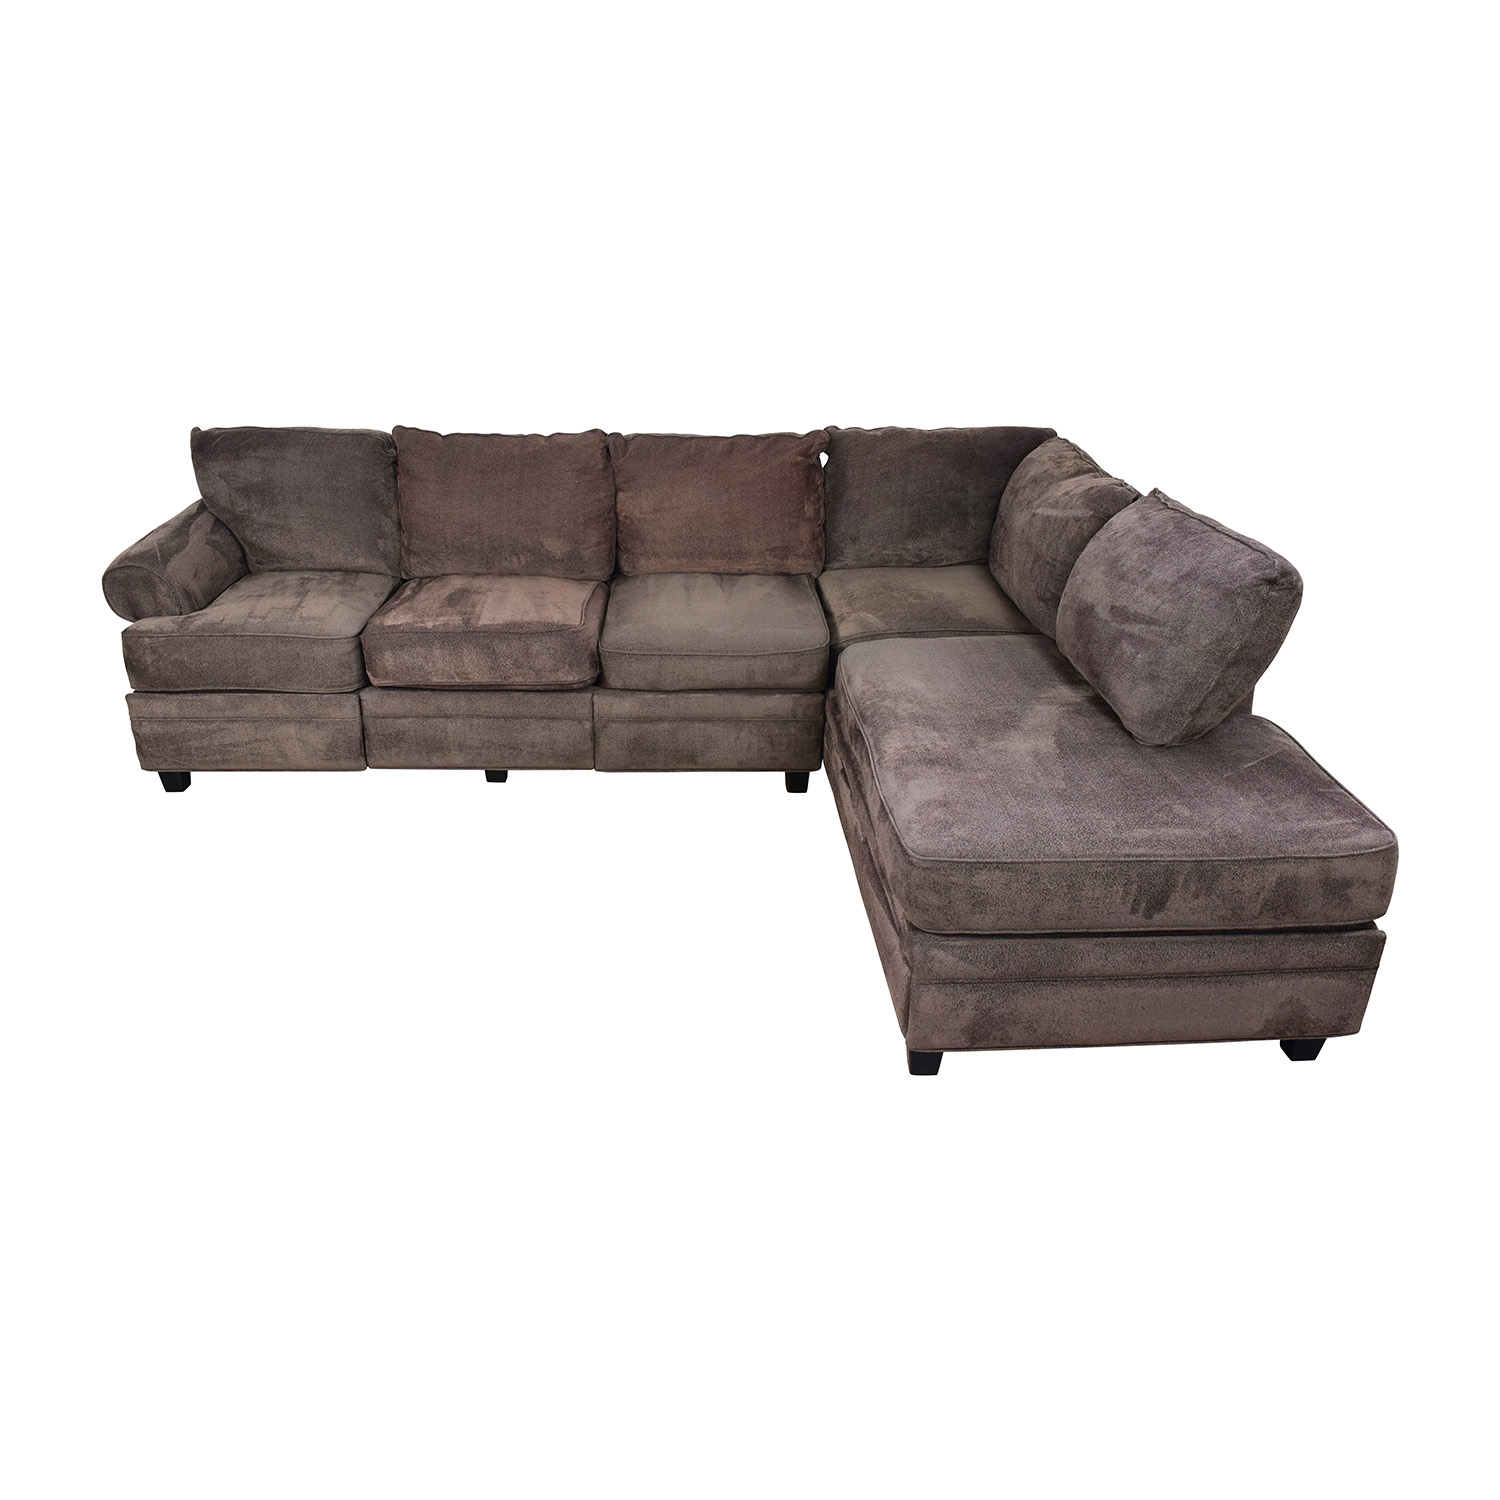 Bobs Furniture Brown Sectional with Storage / Sectionals